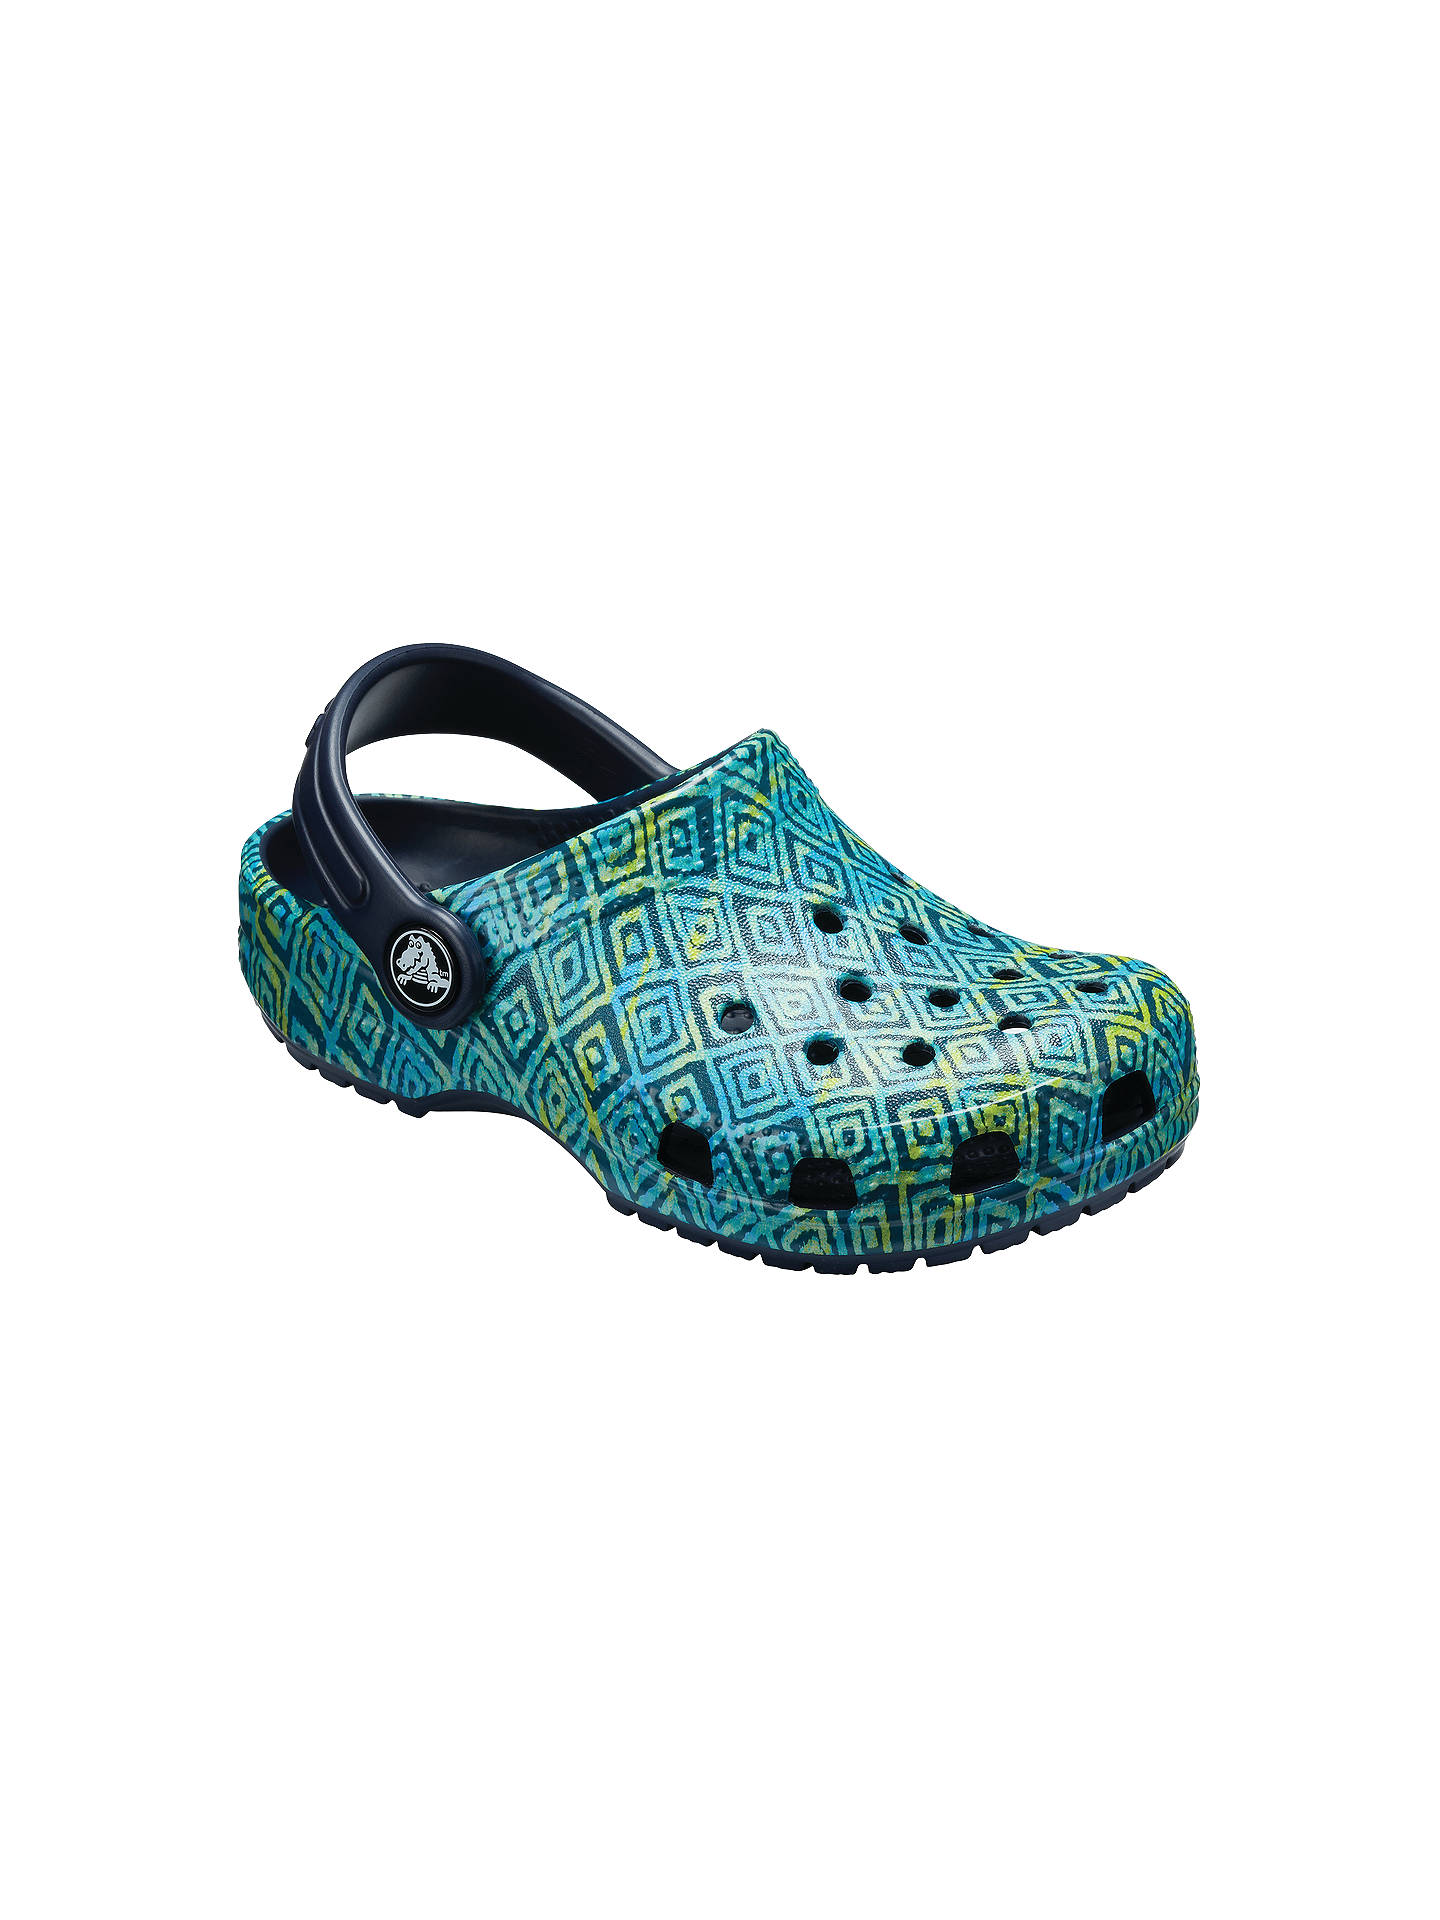 472a3b5382ad5 Buy Crocs Children's Classic Croc Graphic Clogs, Navy, 4 Jnr Online at  johnlewis.